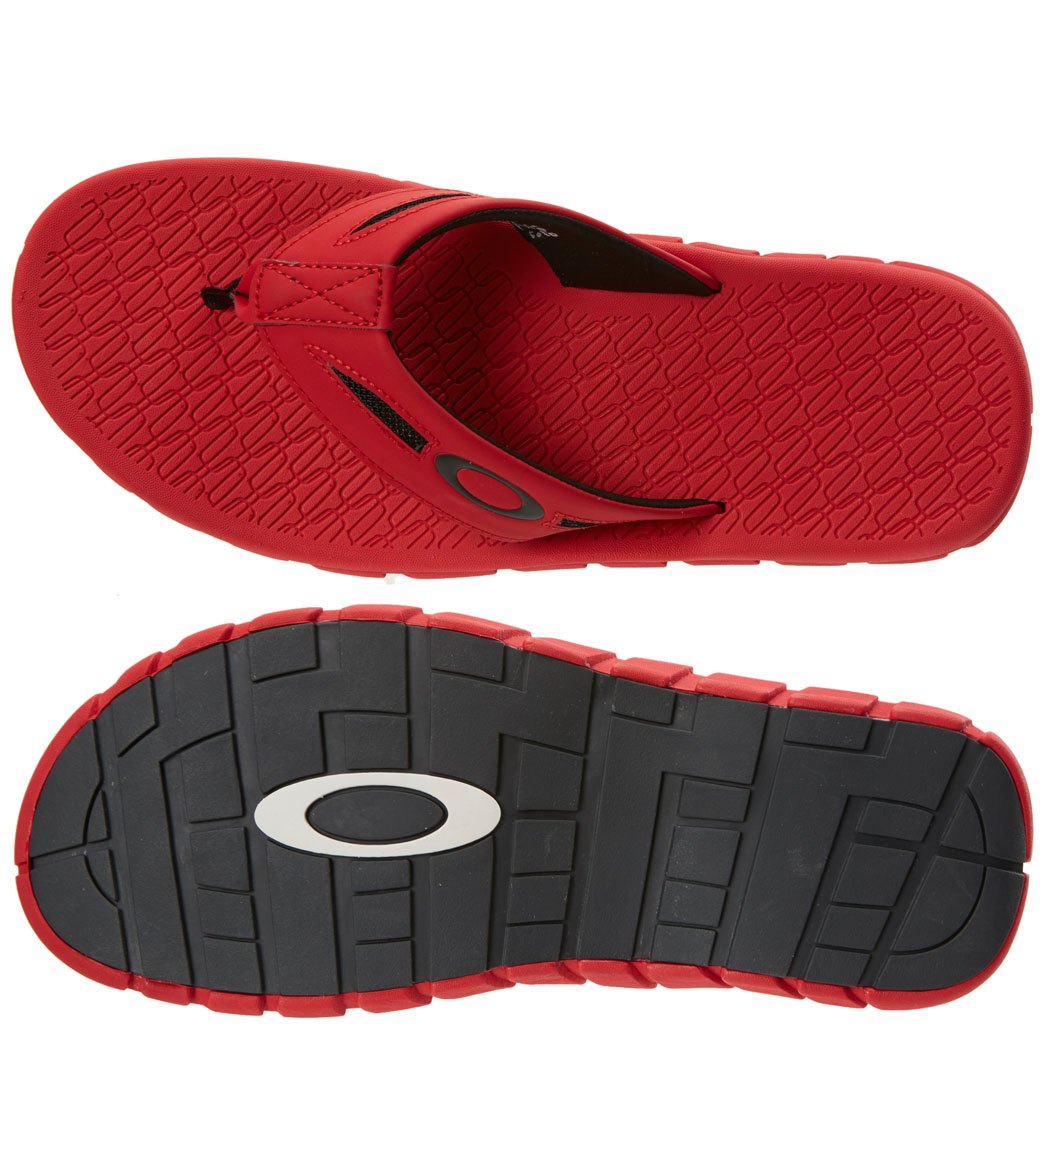 798211bf56 Oakley Men s Operative 2.0 Flip Flop at SwimOutlet.com